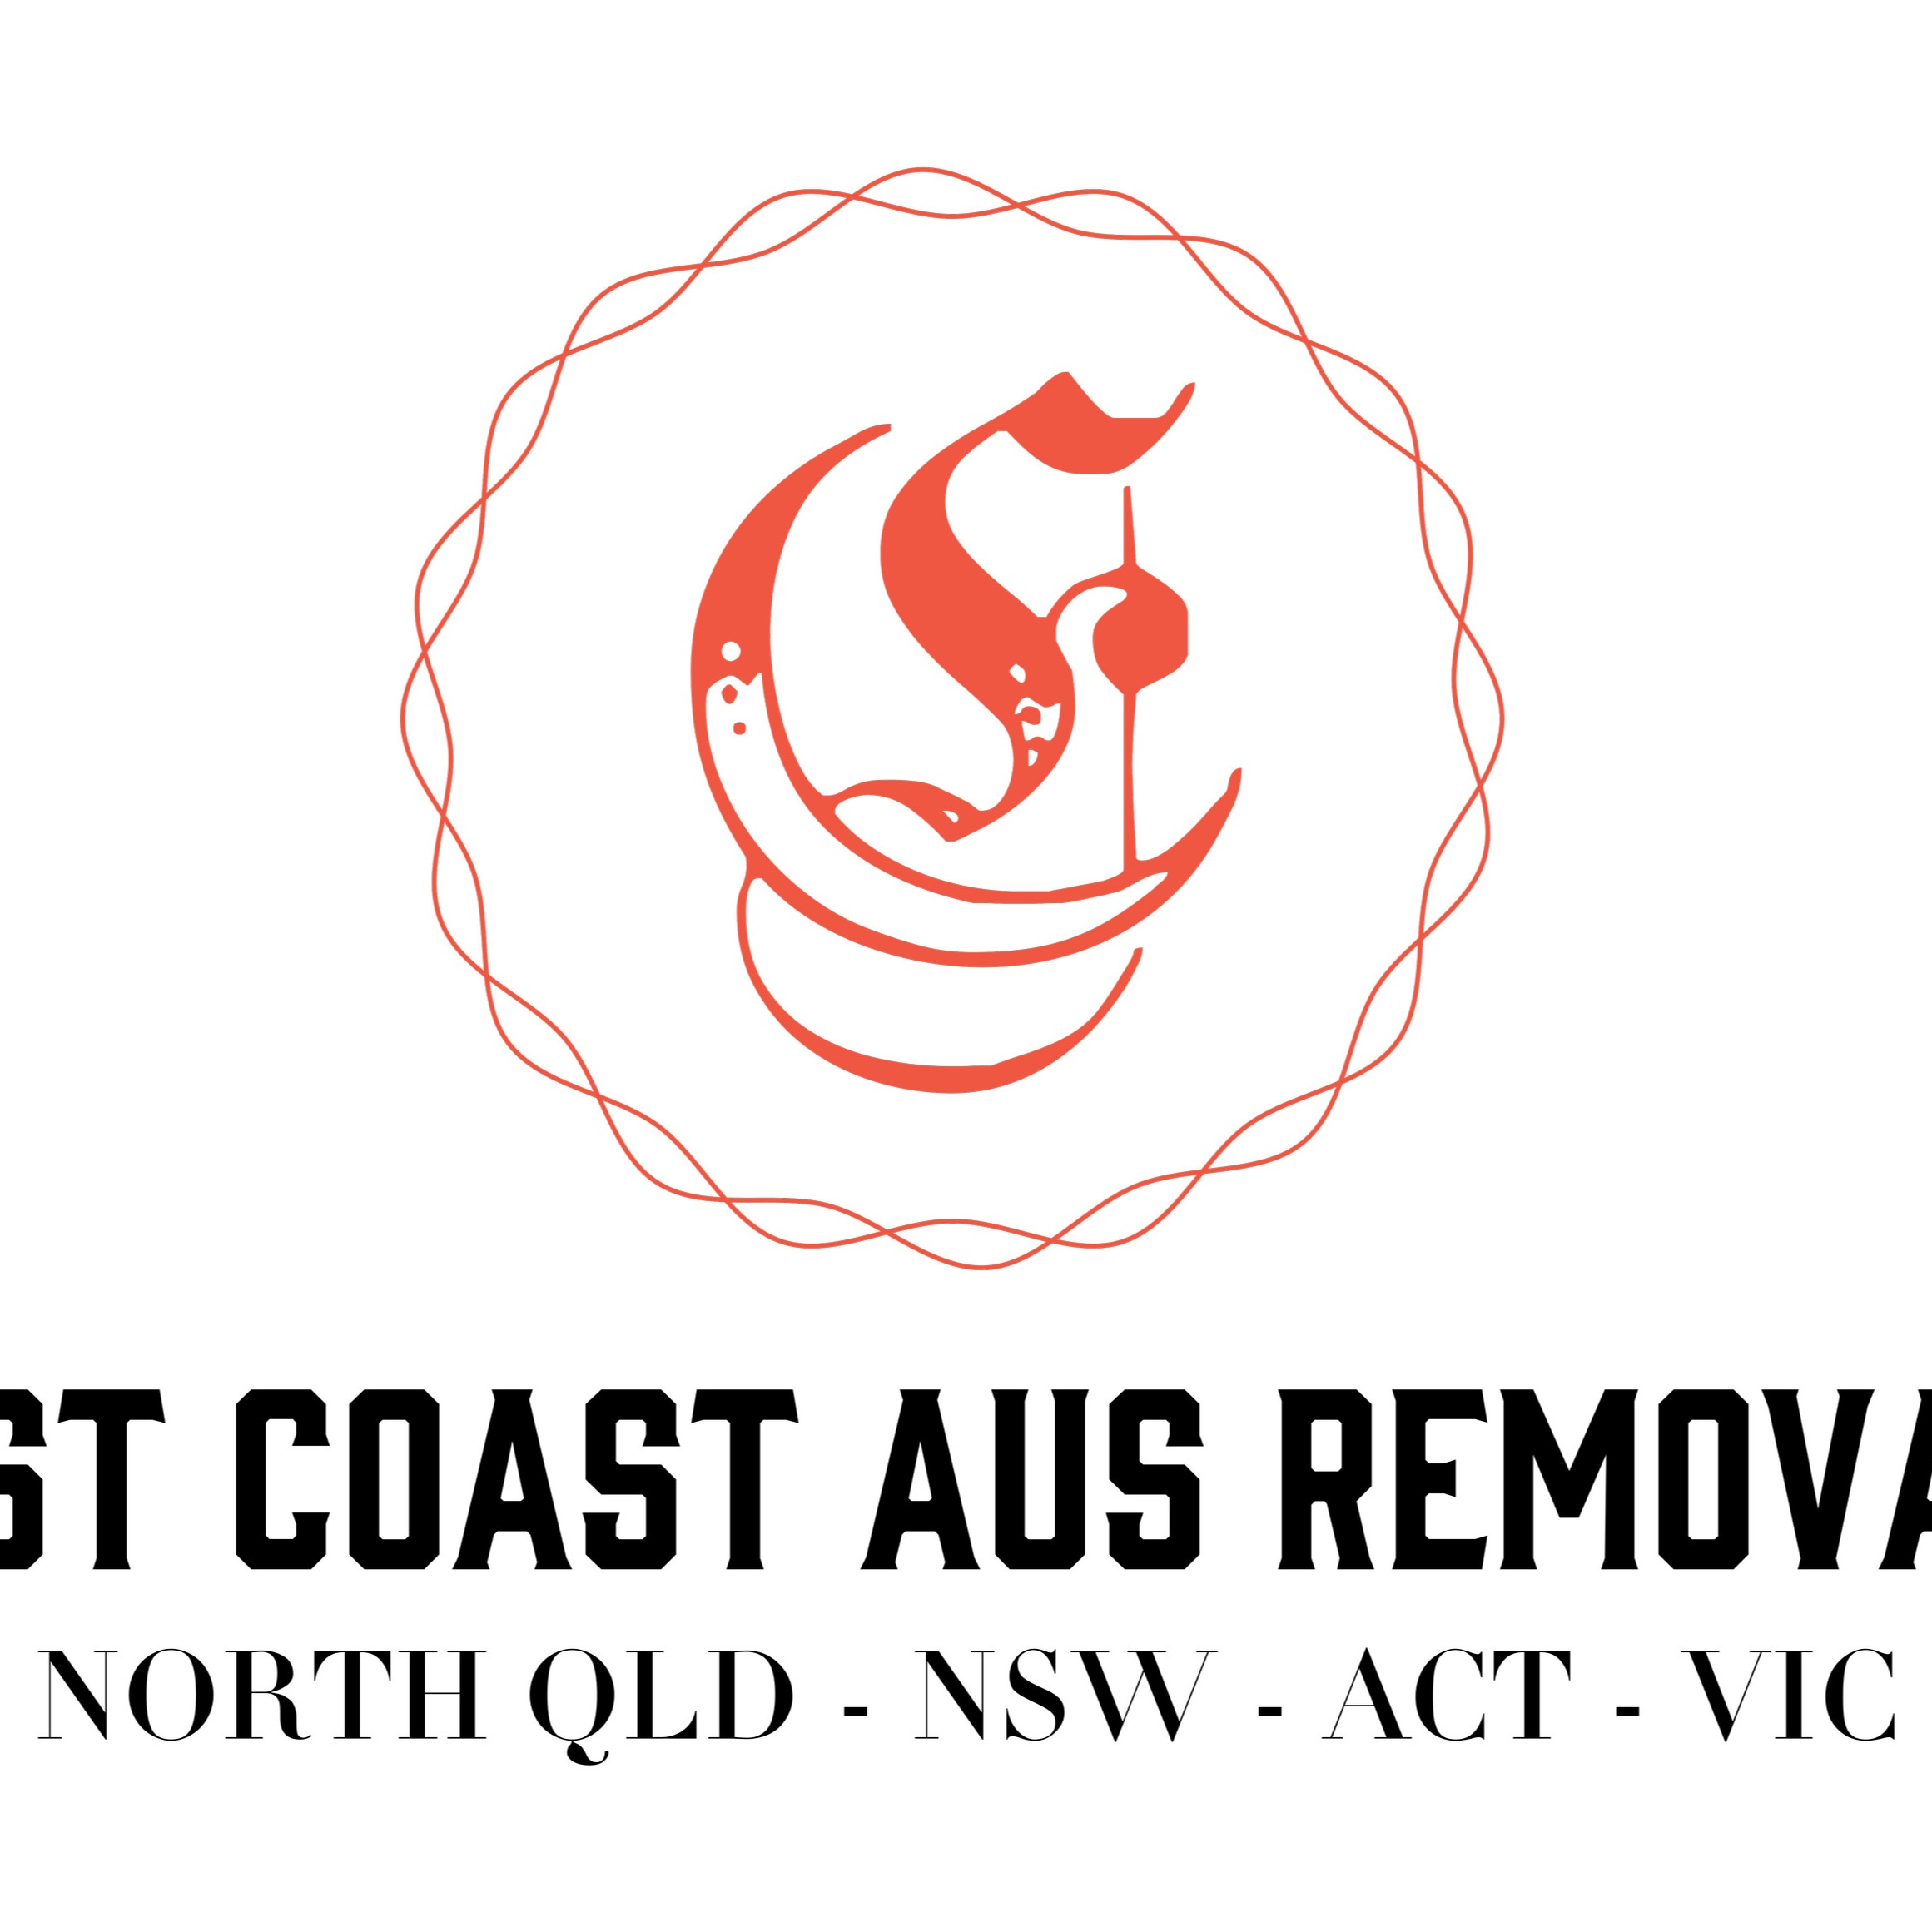 East Coast Aus Removals